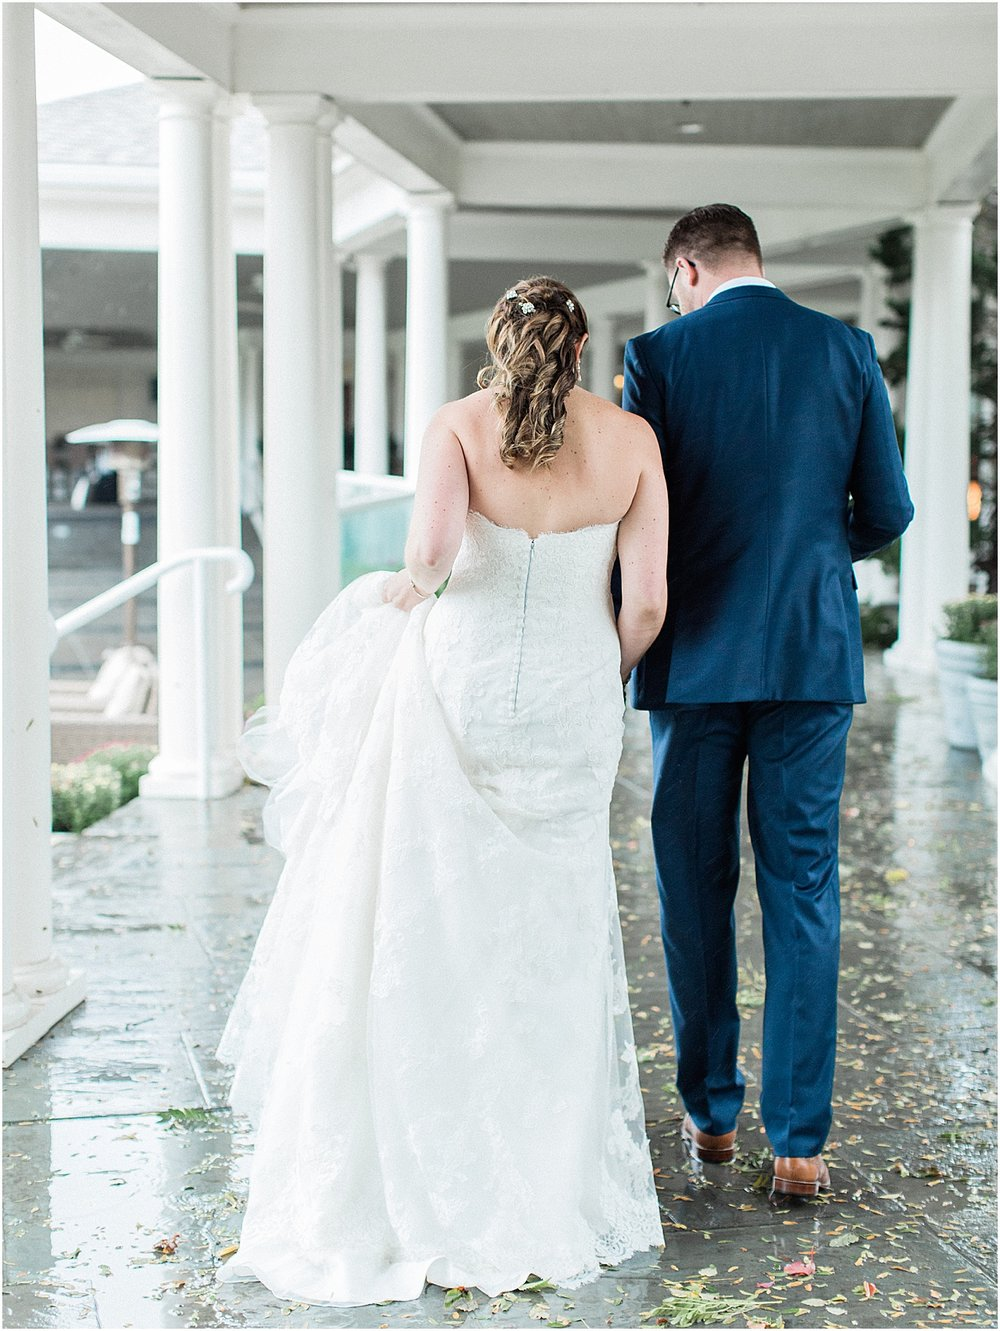 danielle_sean_willowbend_rain_rainy_day_cape_cod_boston_wedding_photographer_meredith_jane_photography_photo_1678.jpg